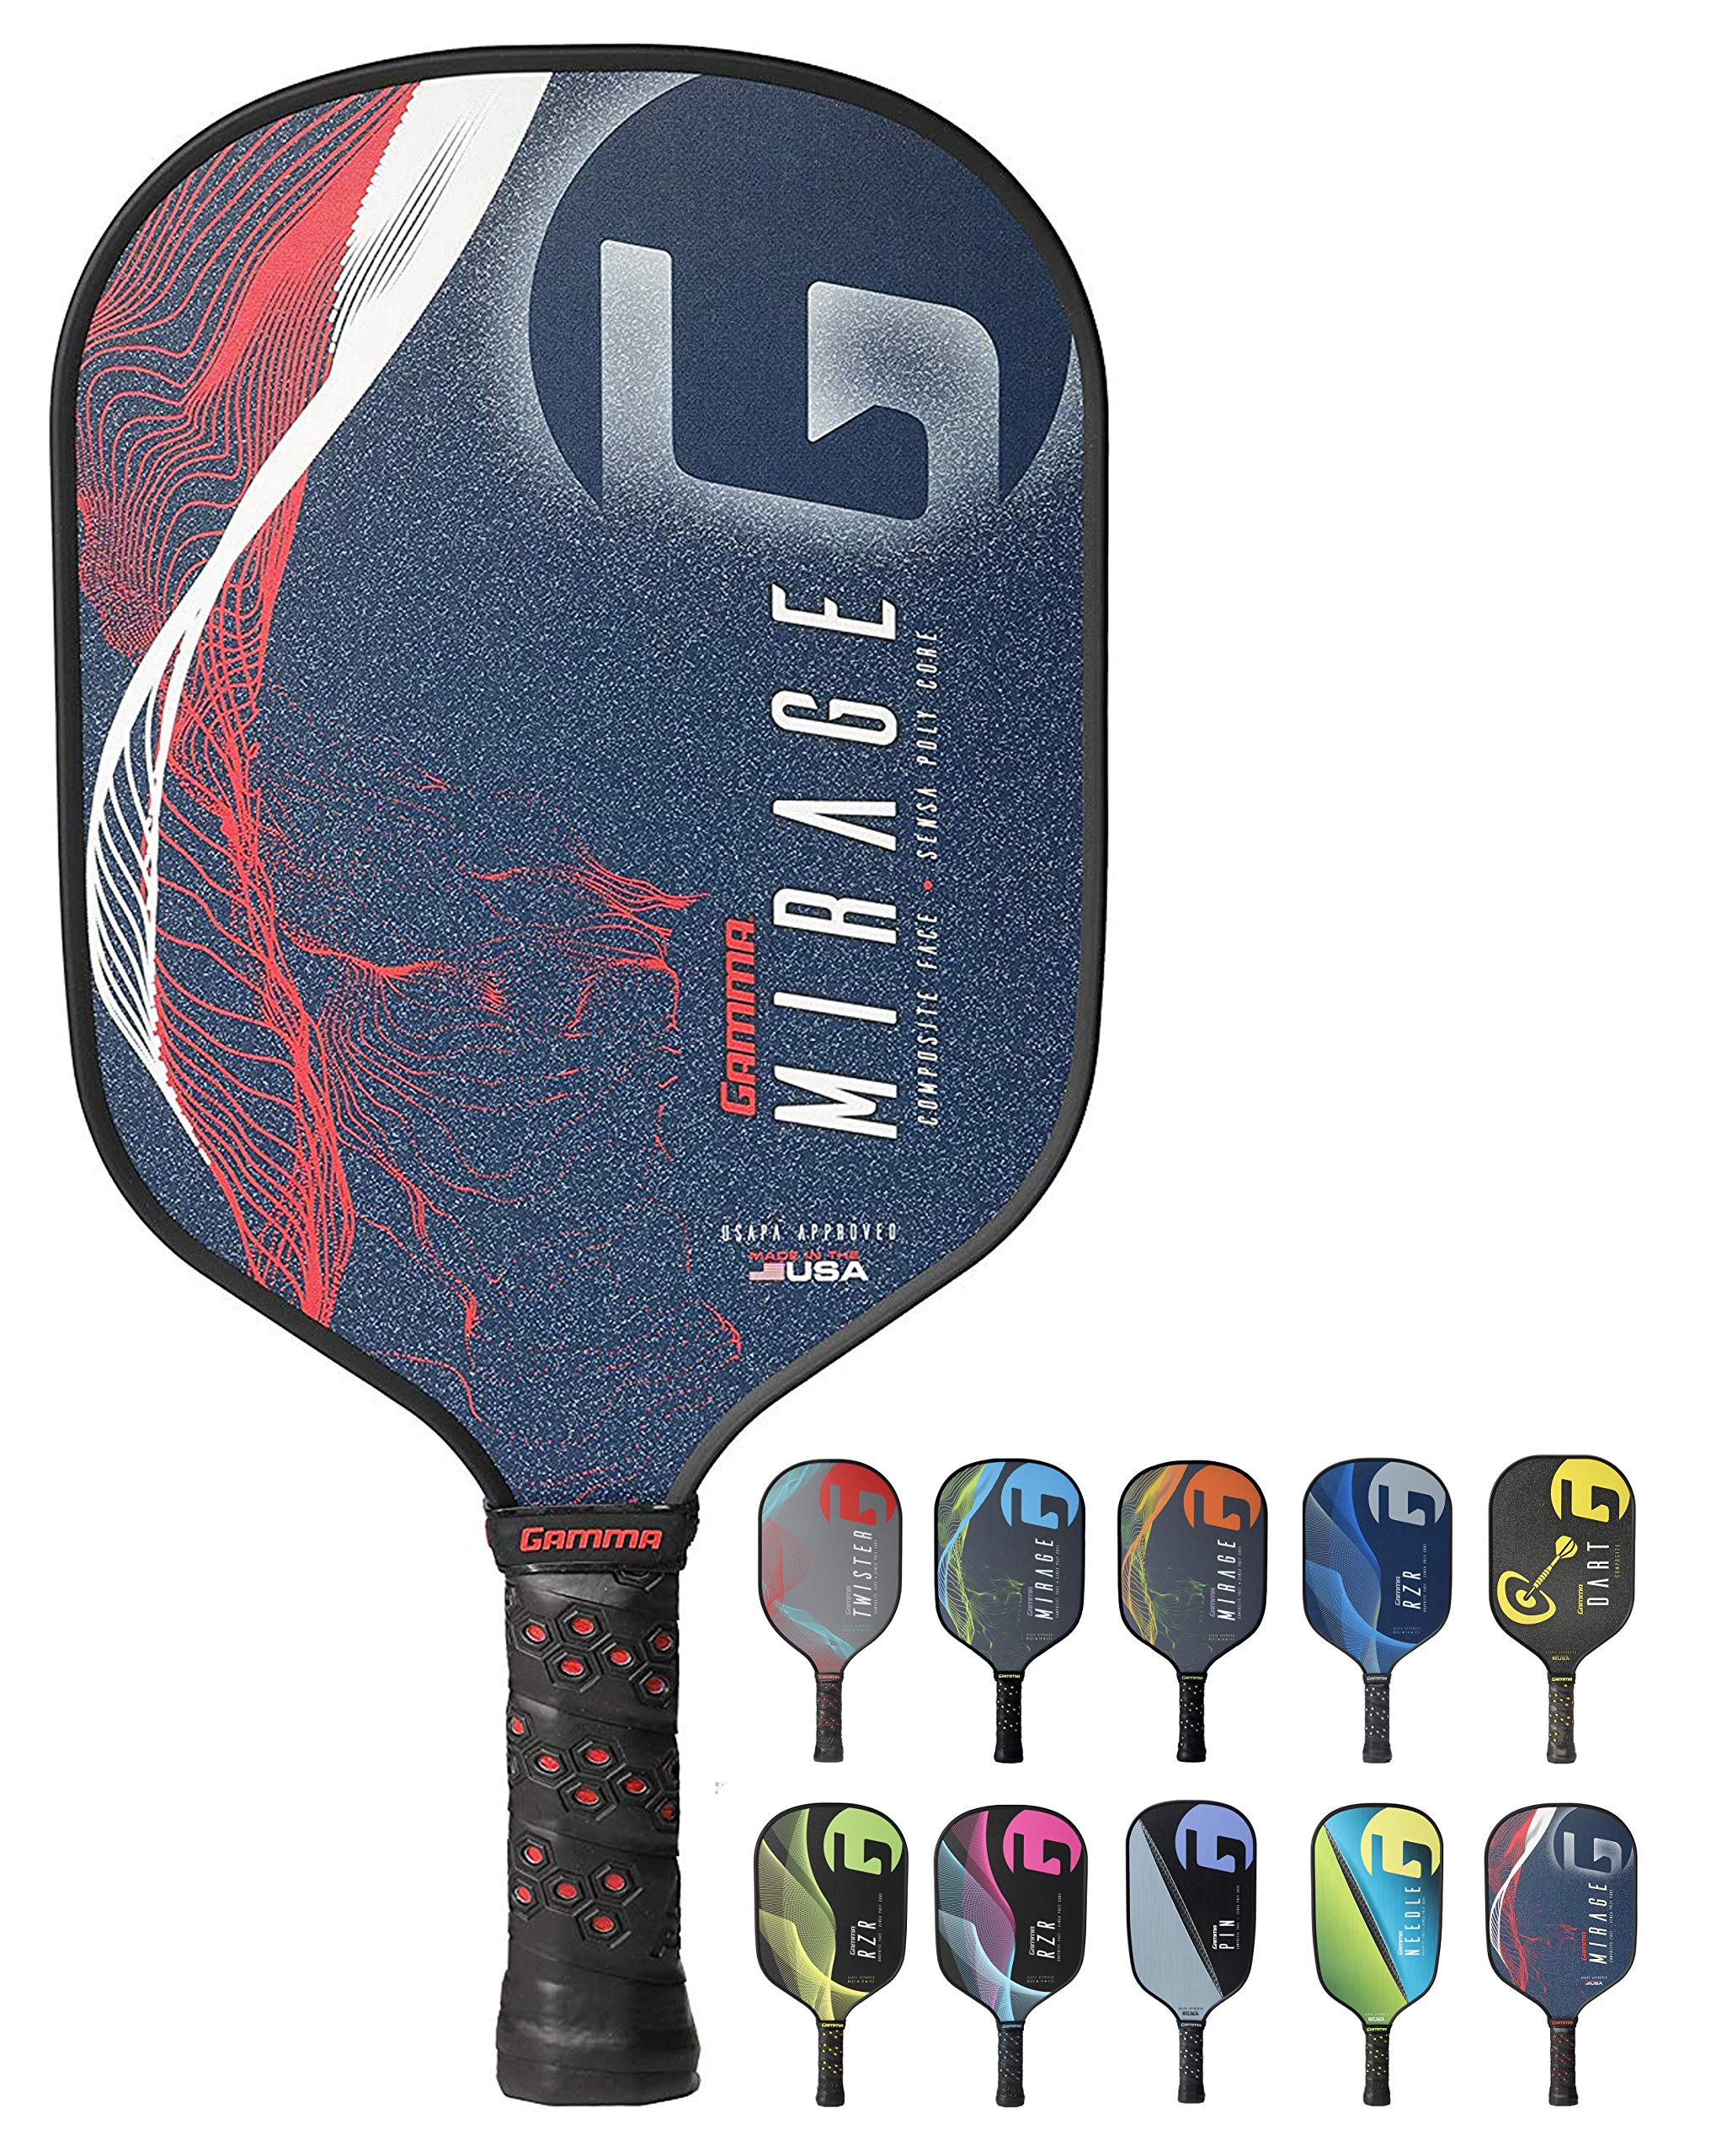 GAMMA Mirage Composite Pickleball Paddle: Pickle Ball Paddles for Indoor & Outdoor Play - USAPA Approved Racquet for Adults & Kids - Red/White/Blue by Gamma (Image #1)